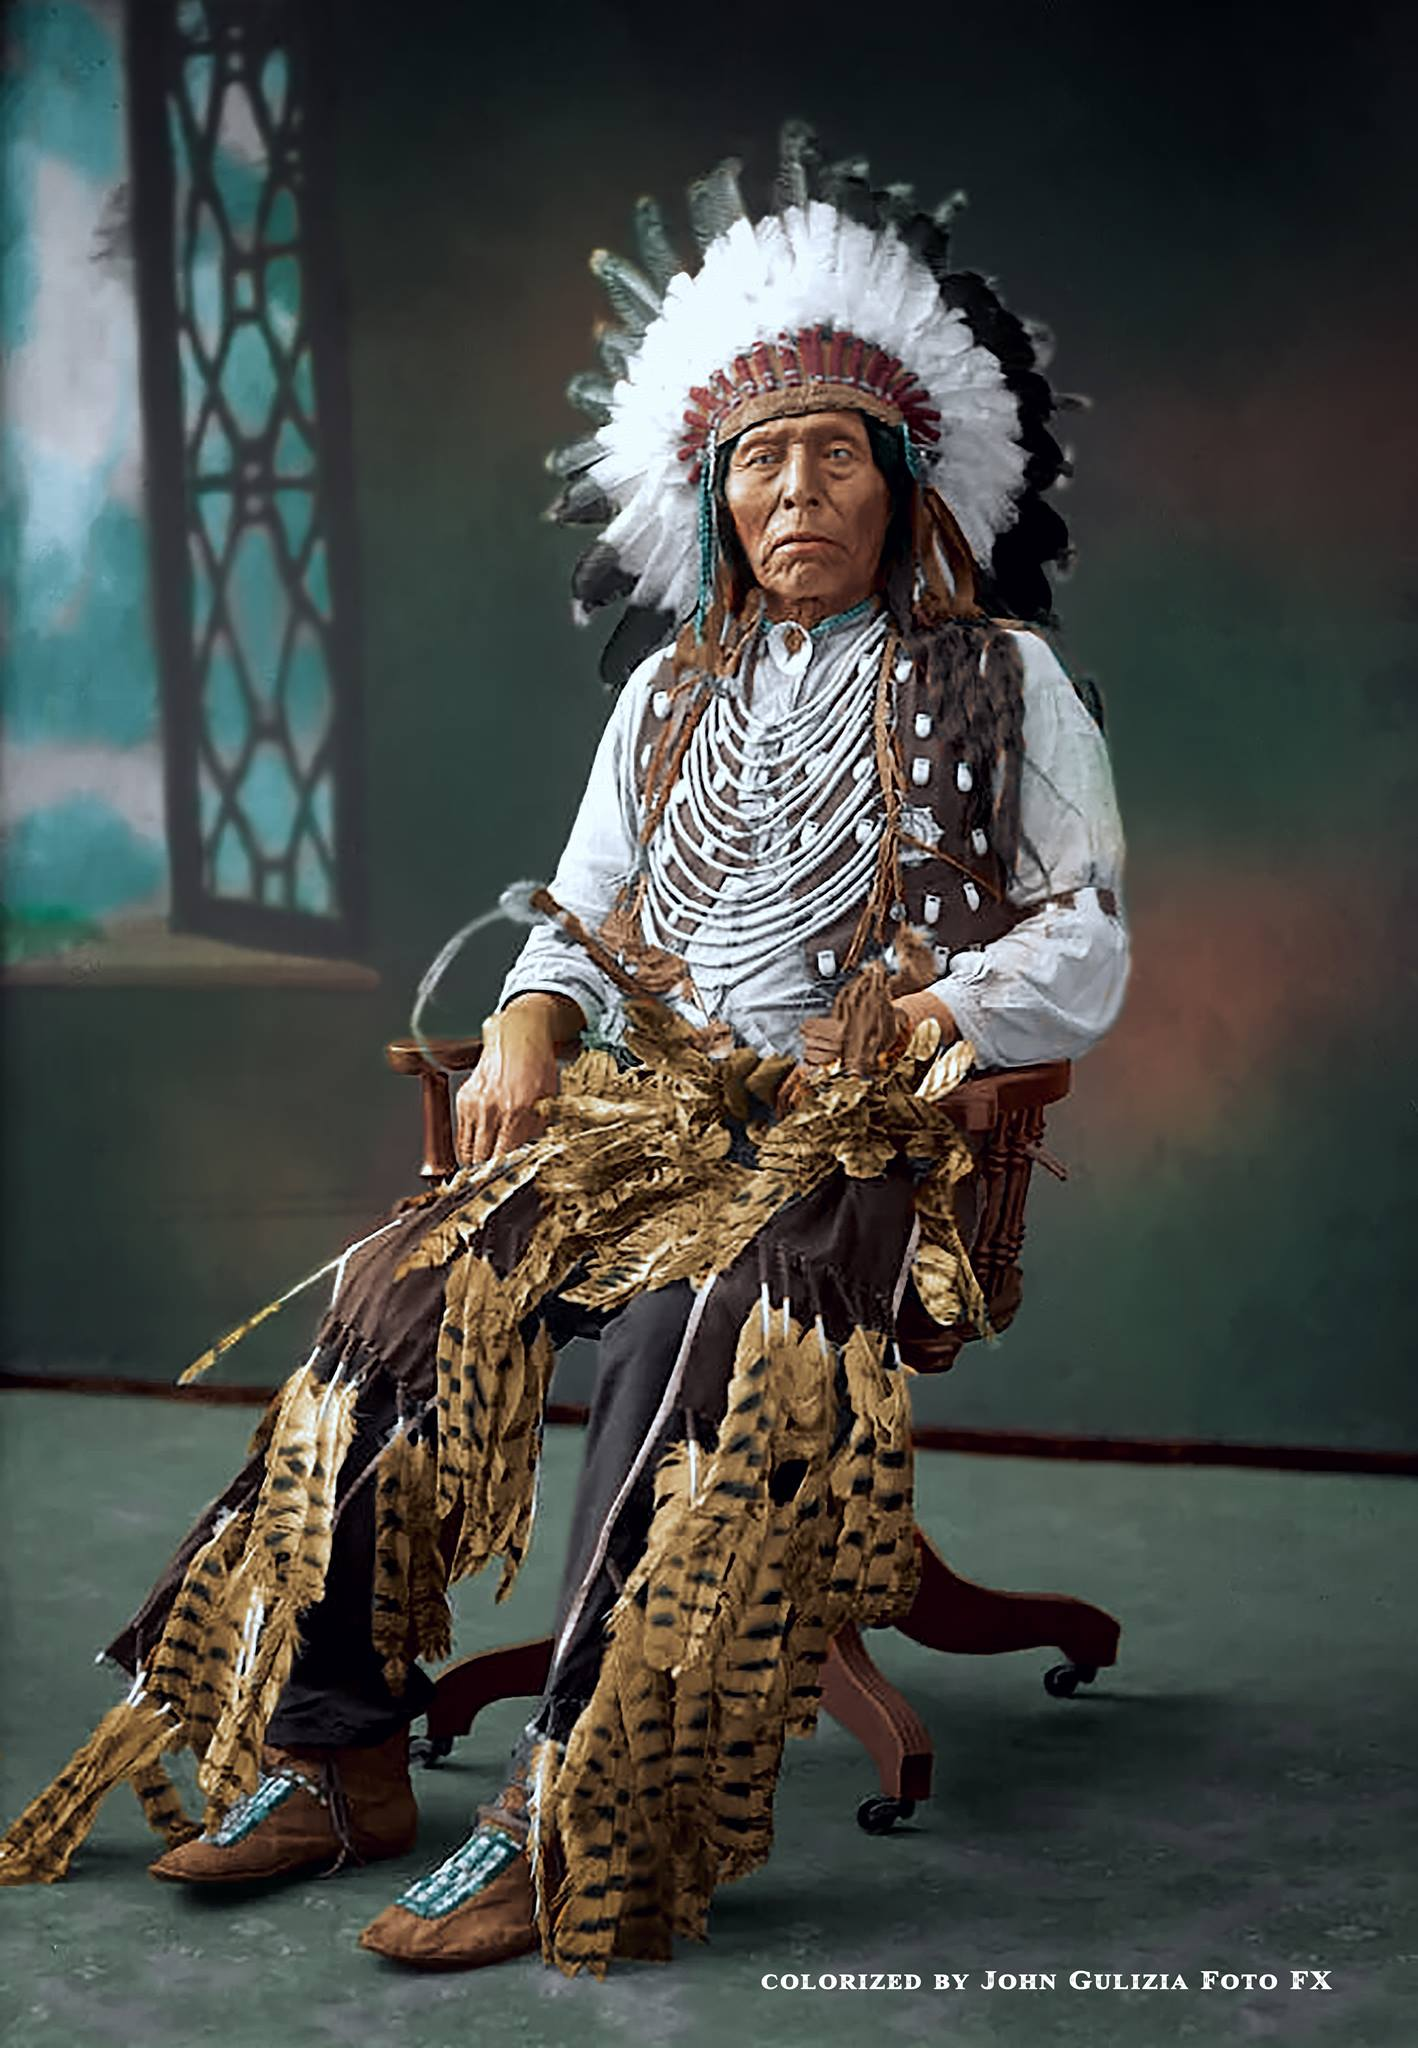 Rare Colorized Native American Images From The Past